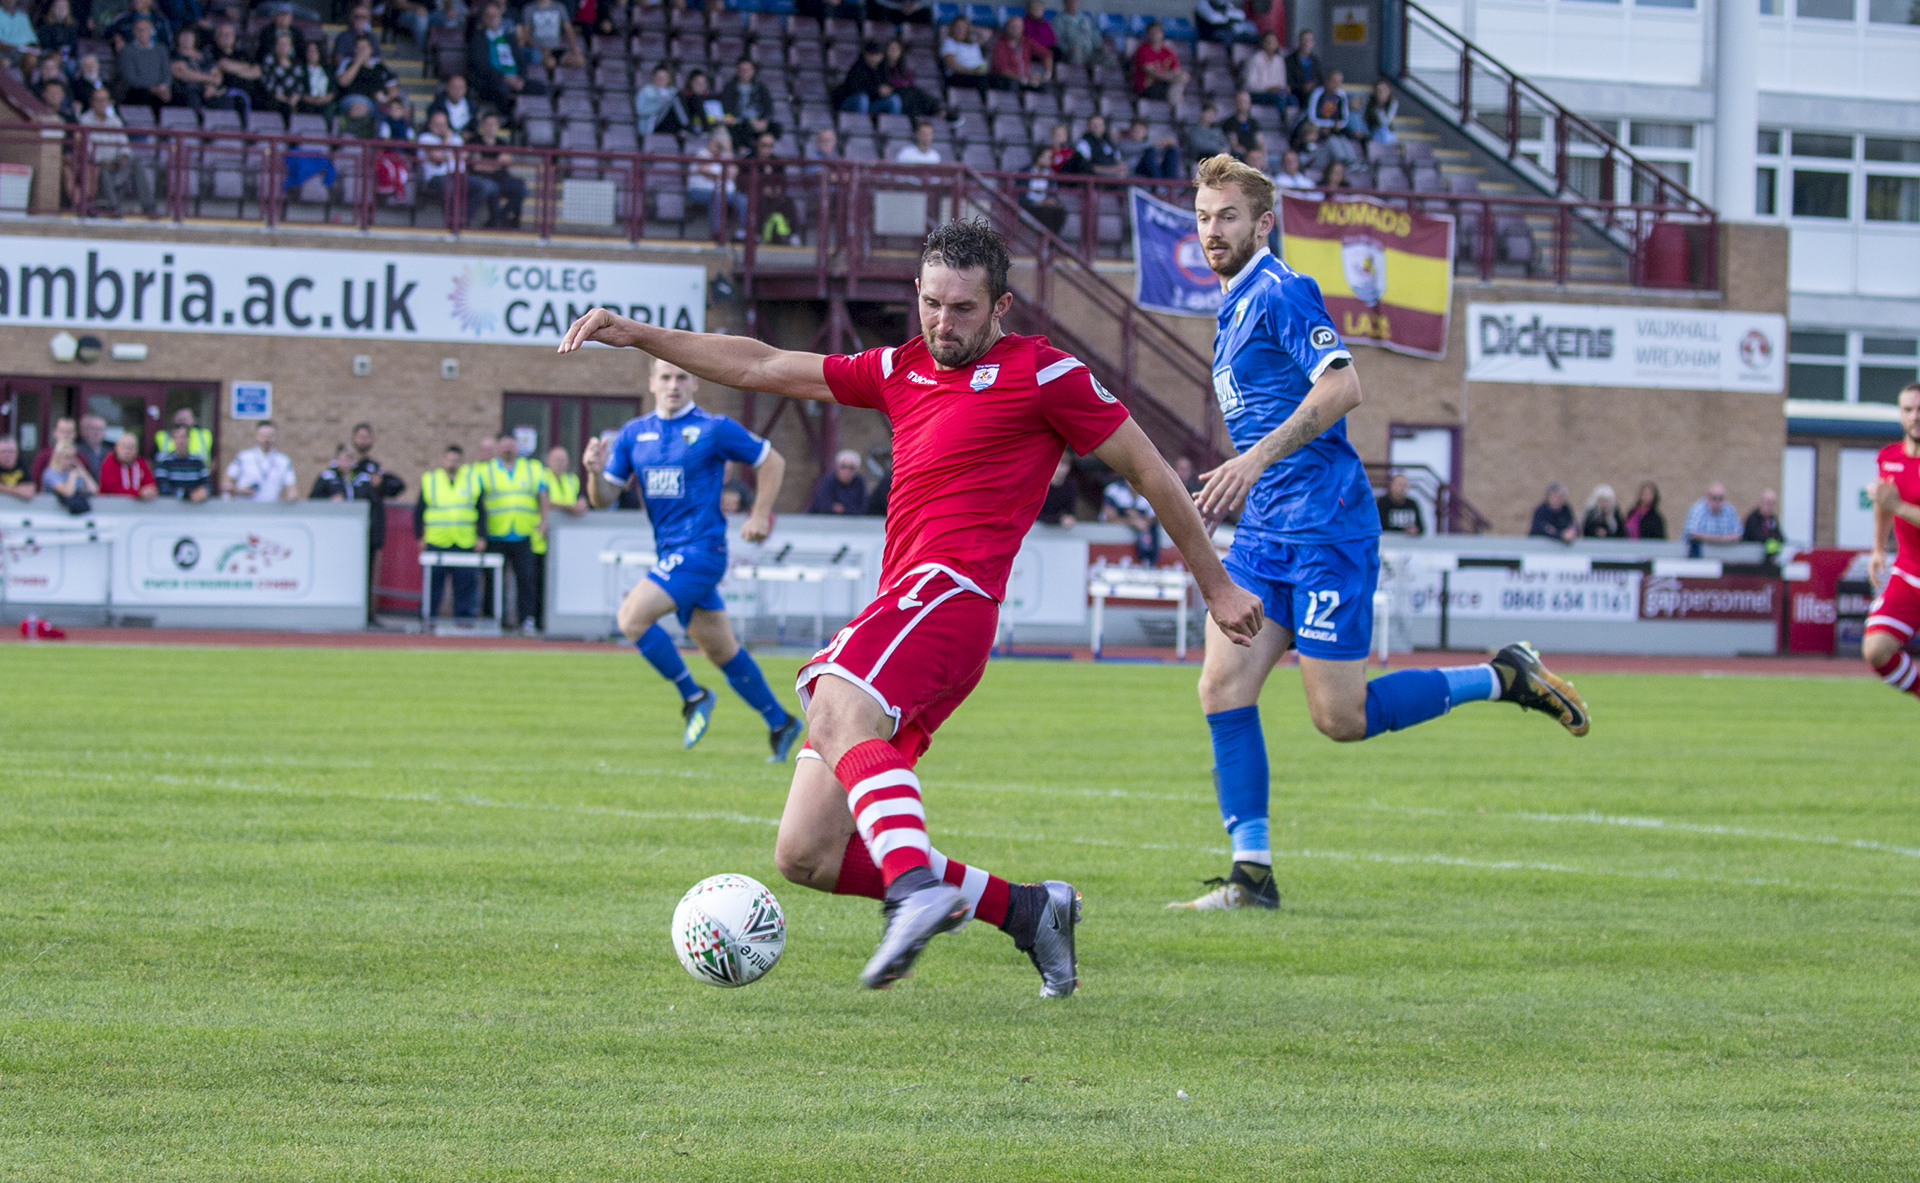 Andy Owens strike to give The Nomads the lead early in the second half © NCM Media